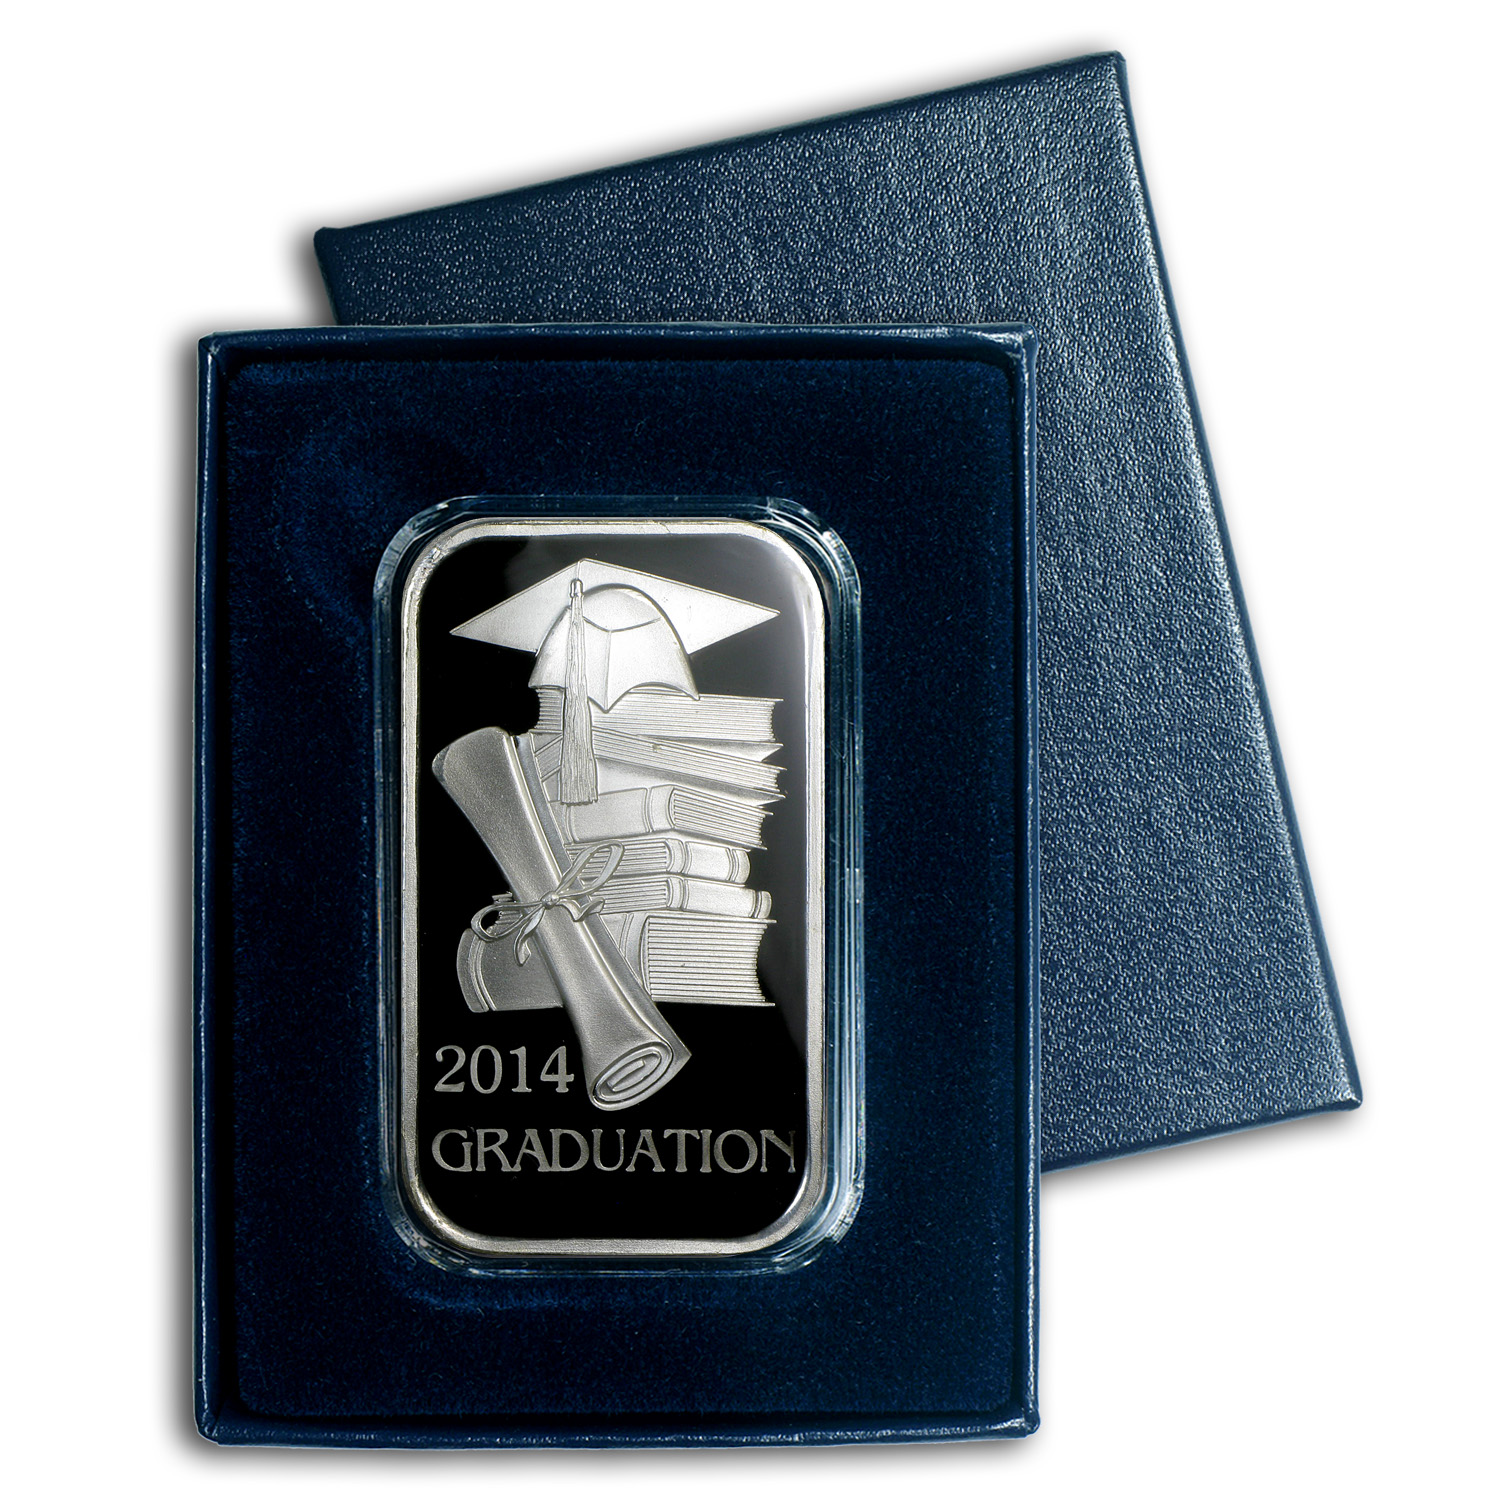 1 oz Silver Bar - 2014 Graduation (Enameled, w/Box & Capsule)